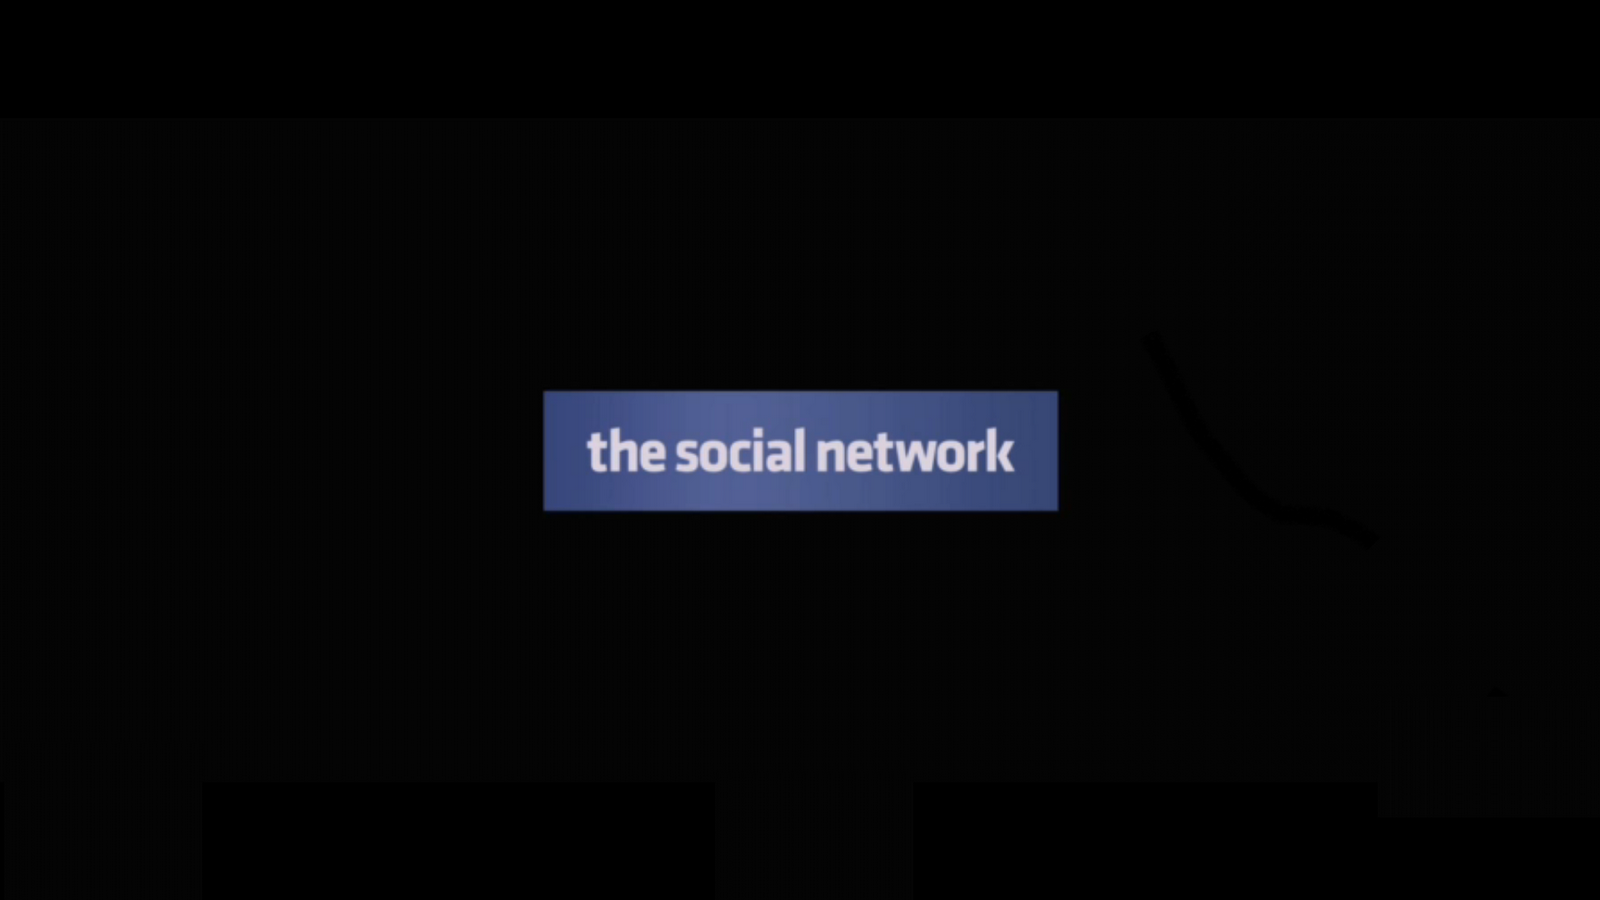 the social network wallpaper - DriverLayer Search Engine